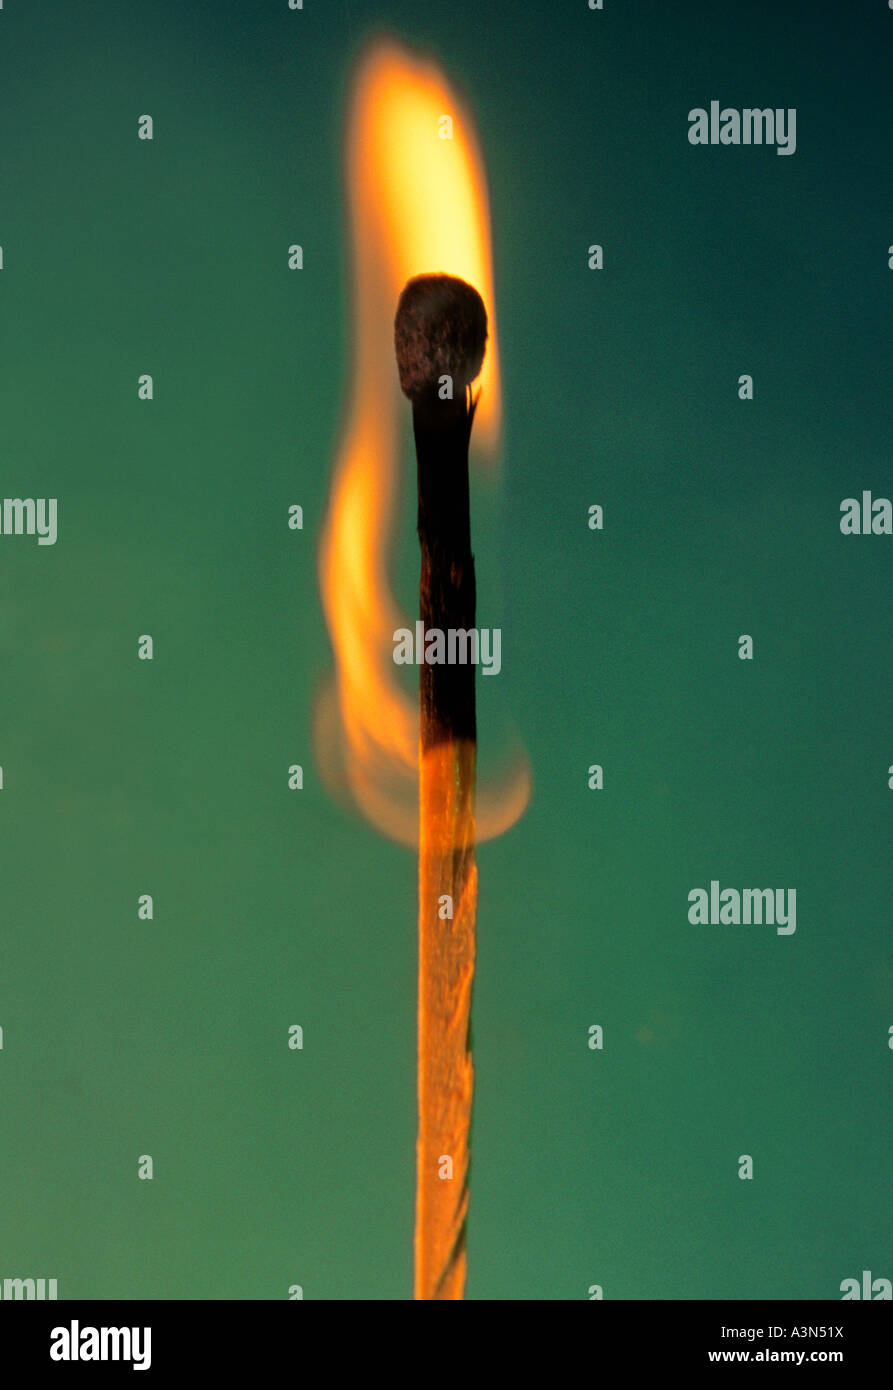 Burning Matchstick Flame - Stock Image